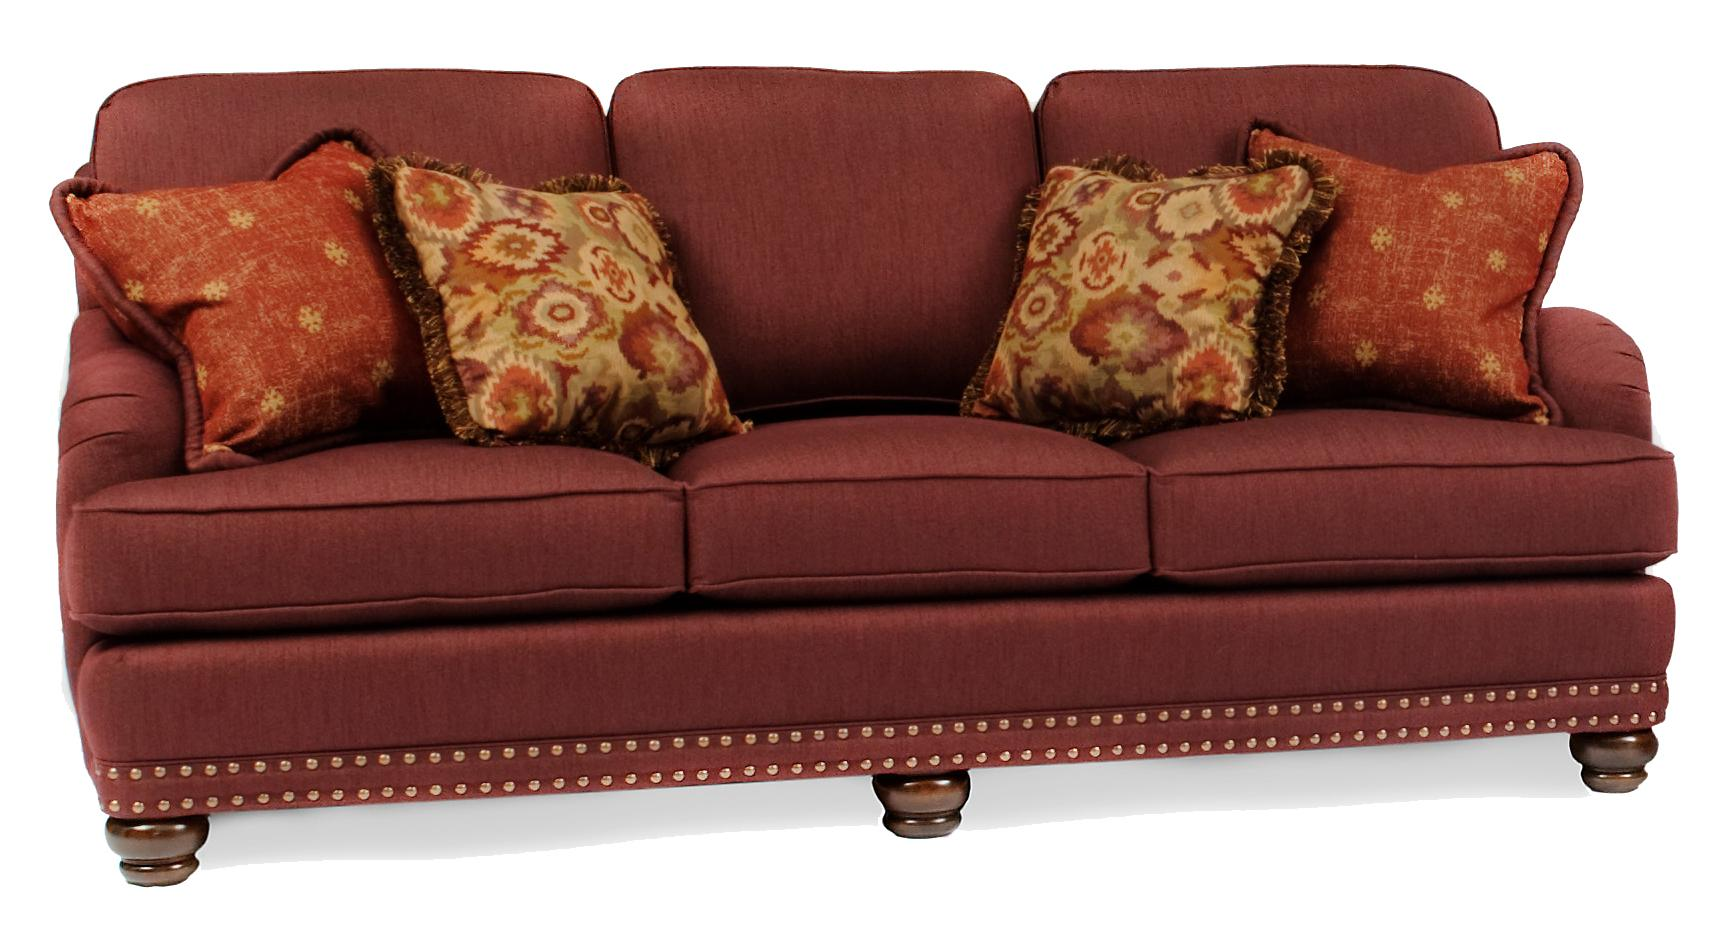 traditional sofa with throw pillows - Decorative Pillows For Couch